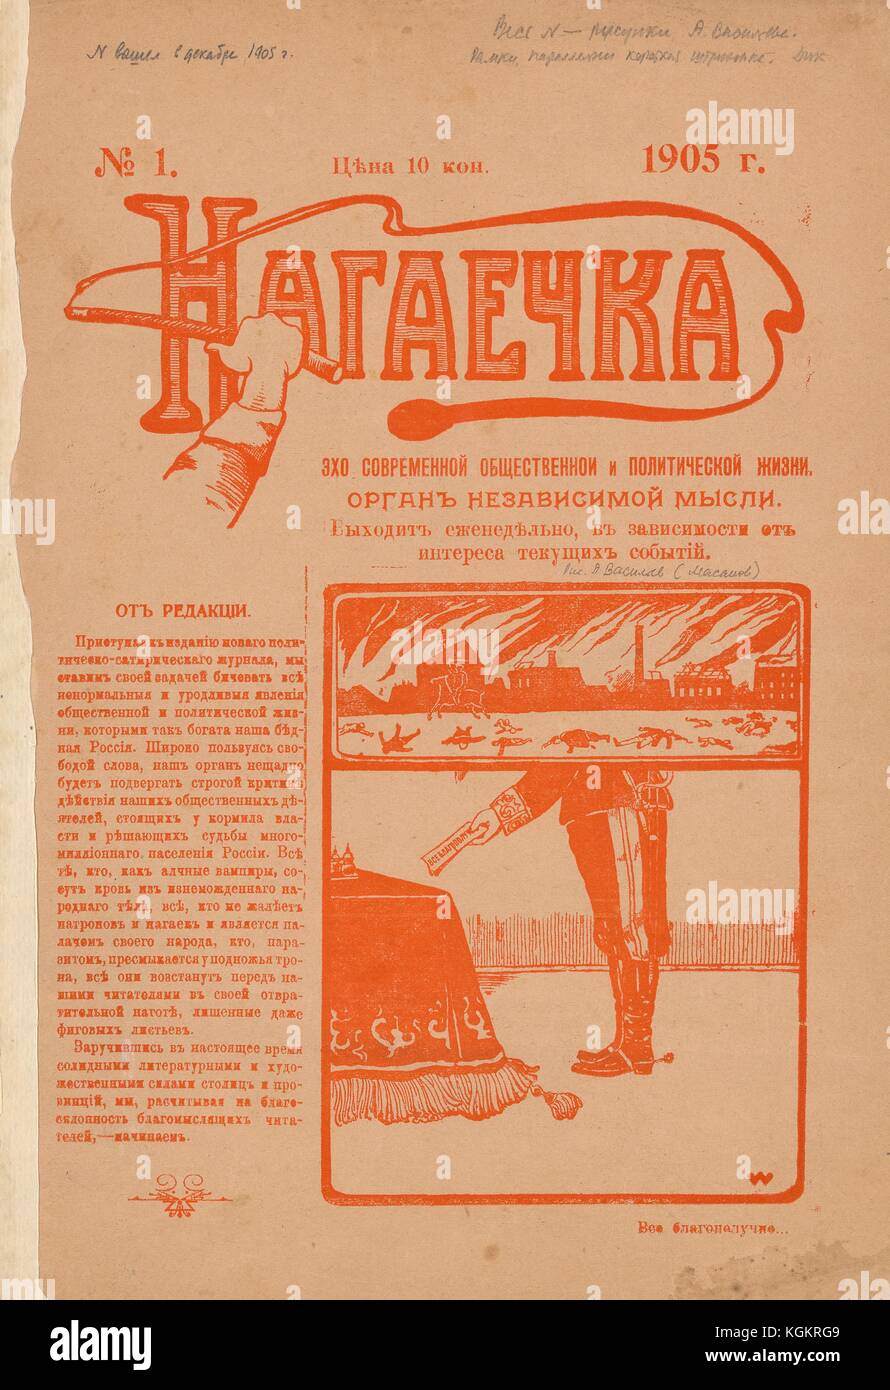 Cover of the Russian satirical journal Nagaechka (Little Whip) showing a picture of bodies lying on the ground in - Stock Image